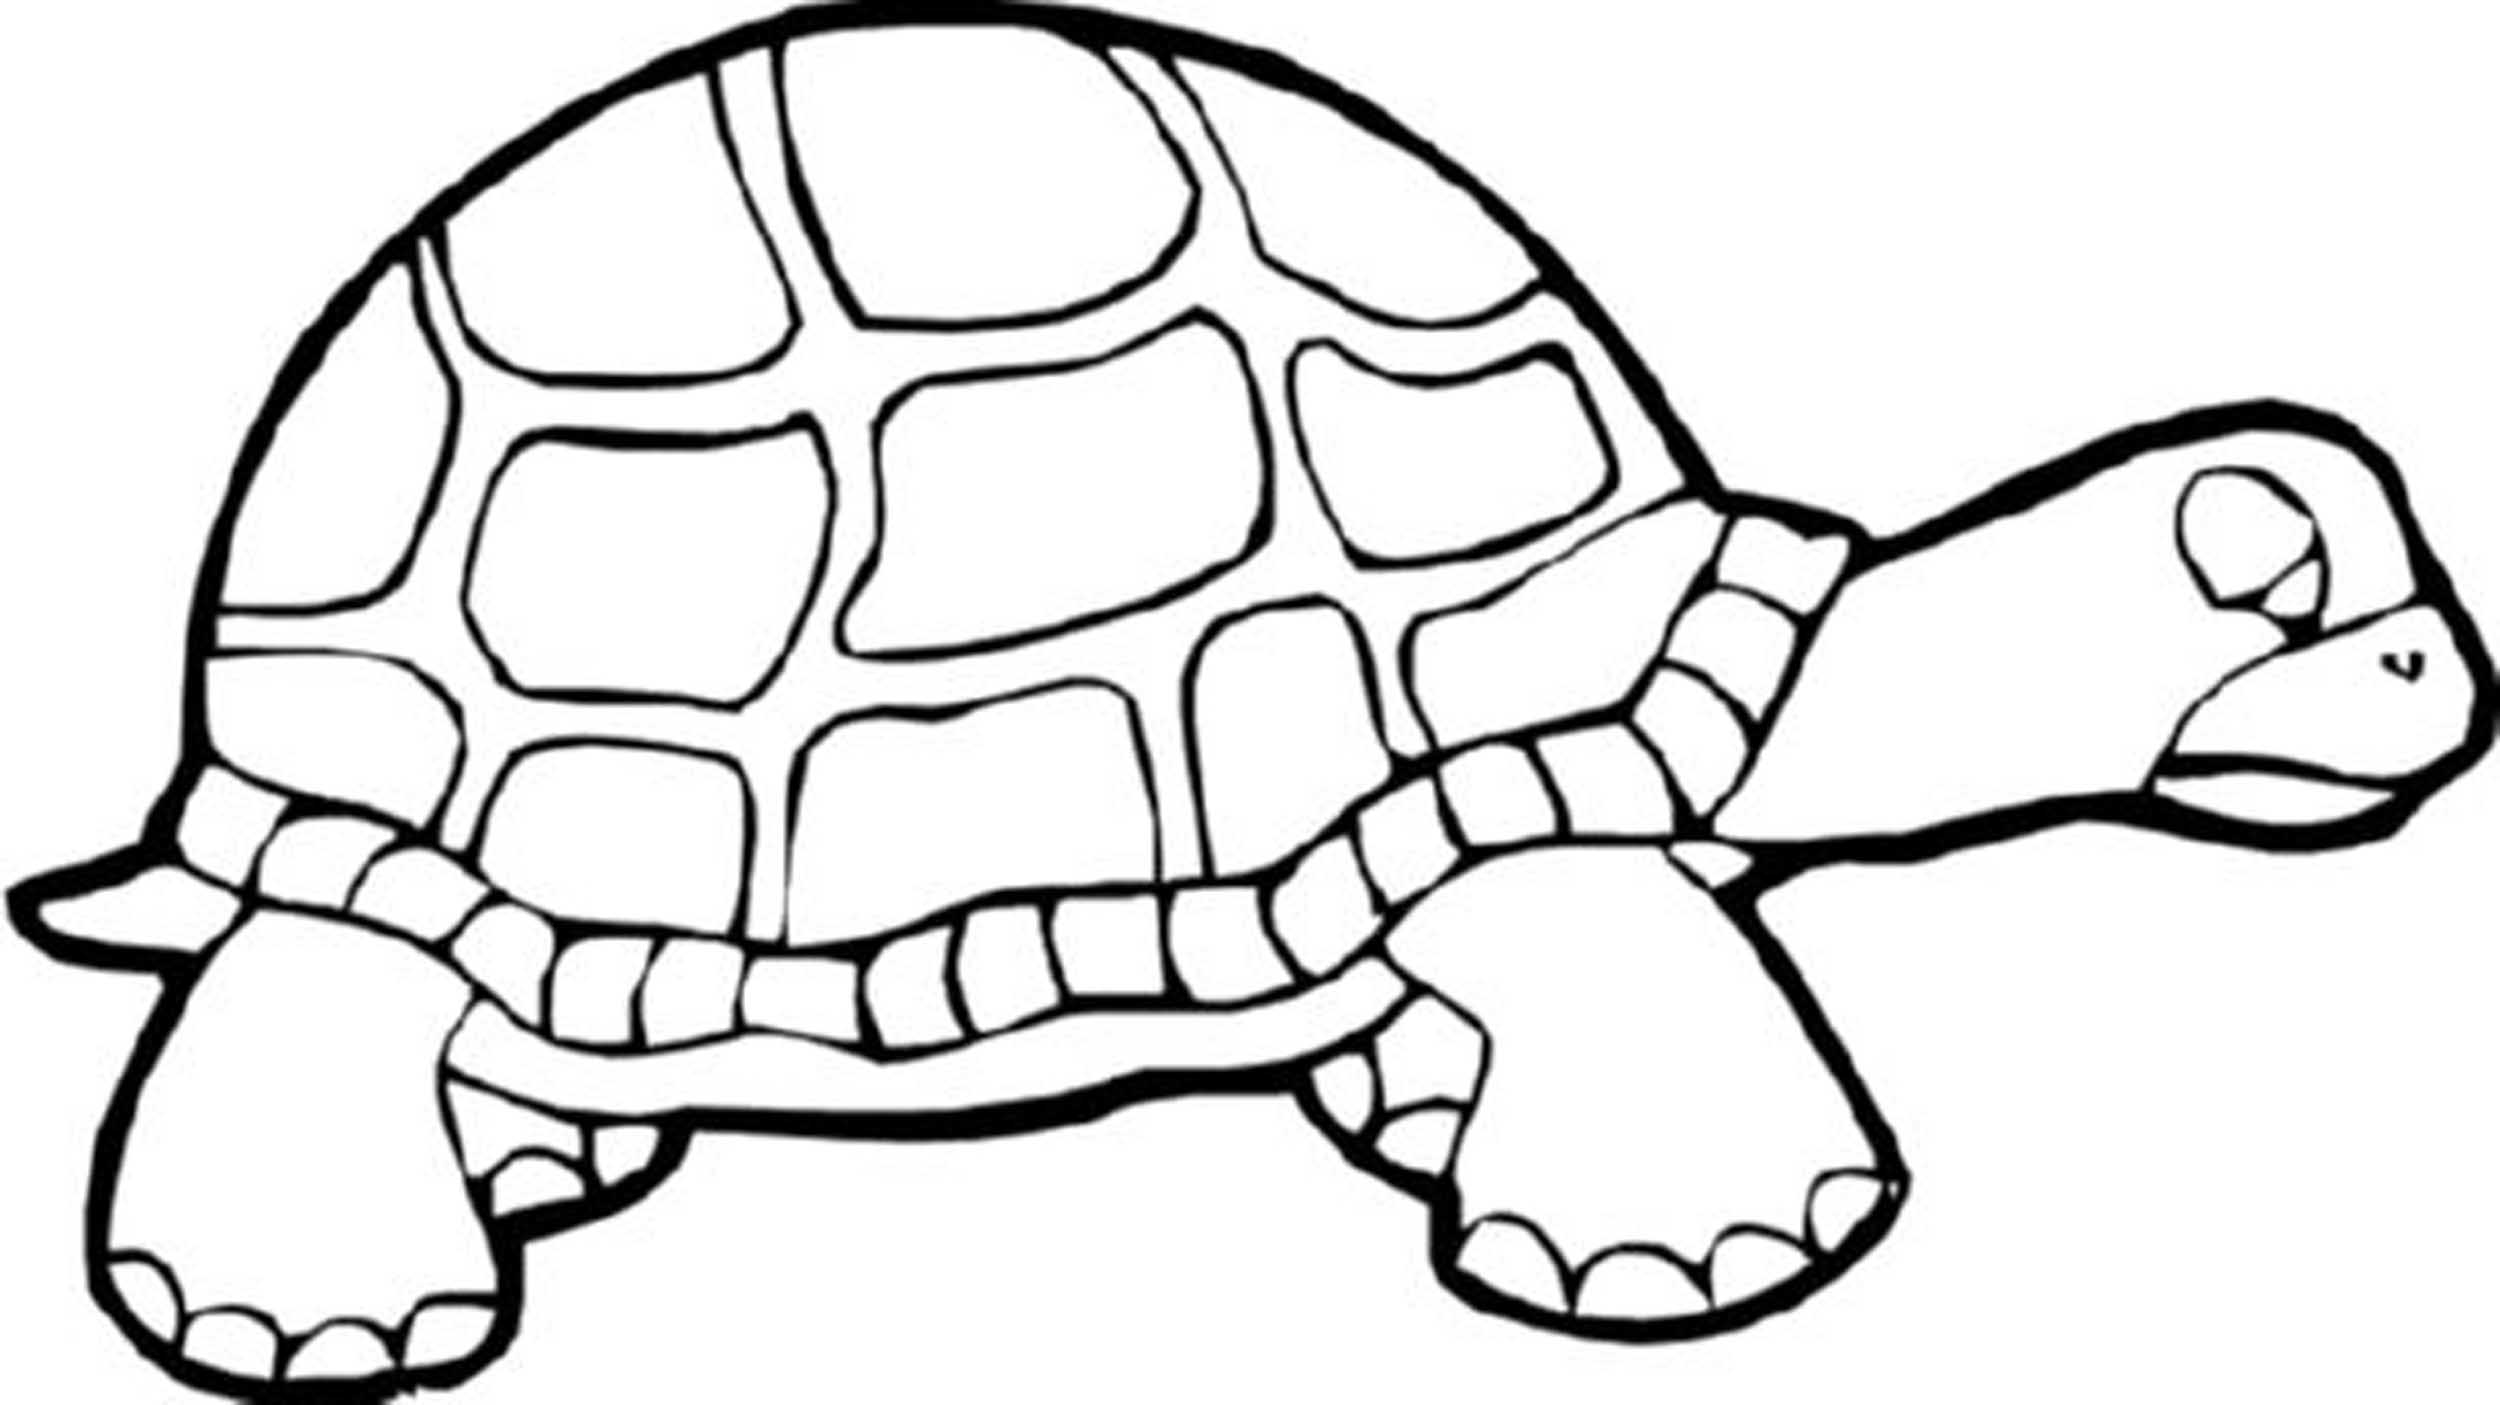 tortoise pictures to colour sulcata tortoise coloring page free printable coloring pages colour to pictures tortoise